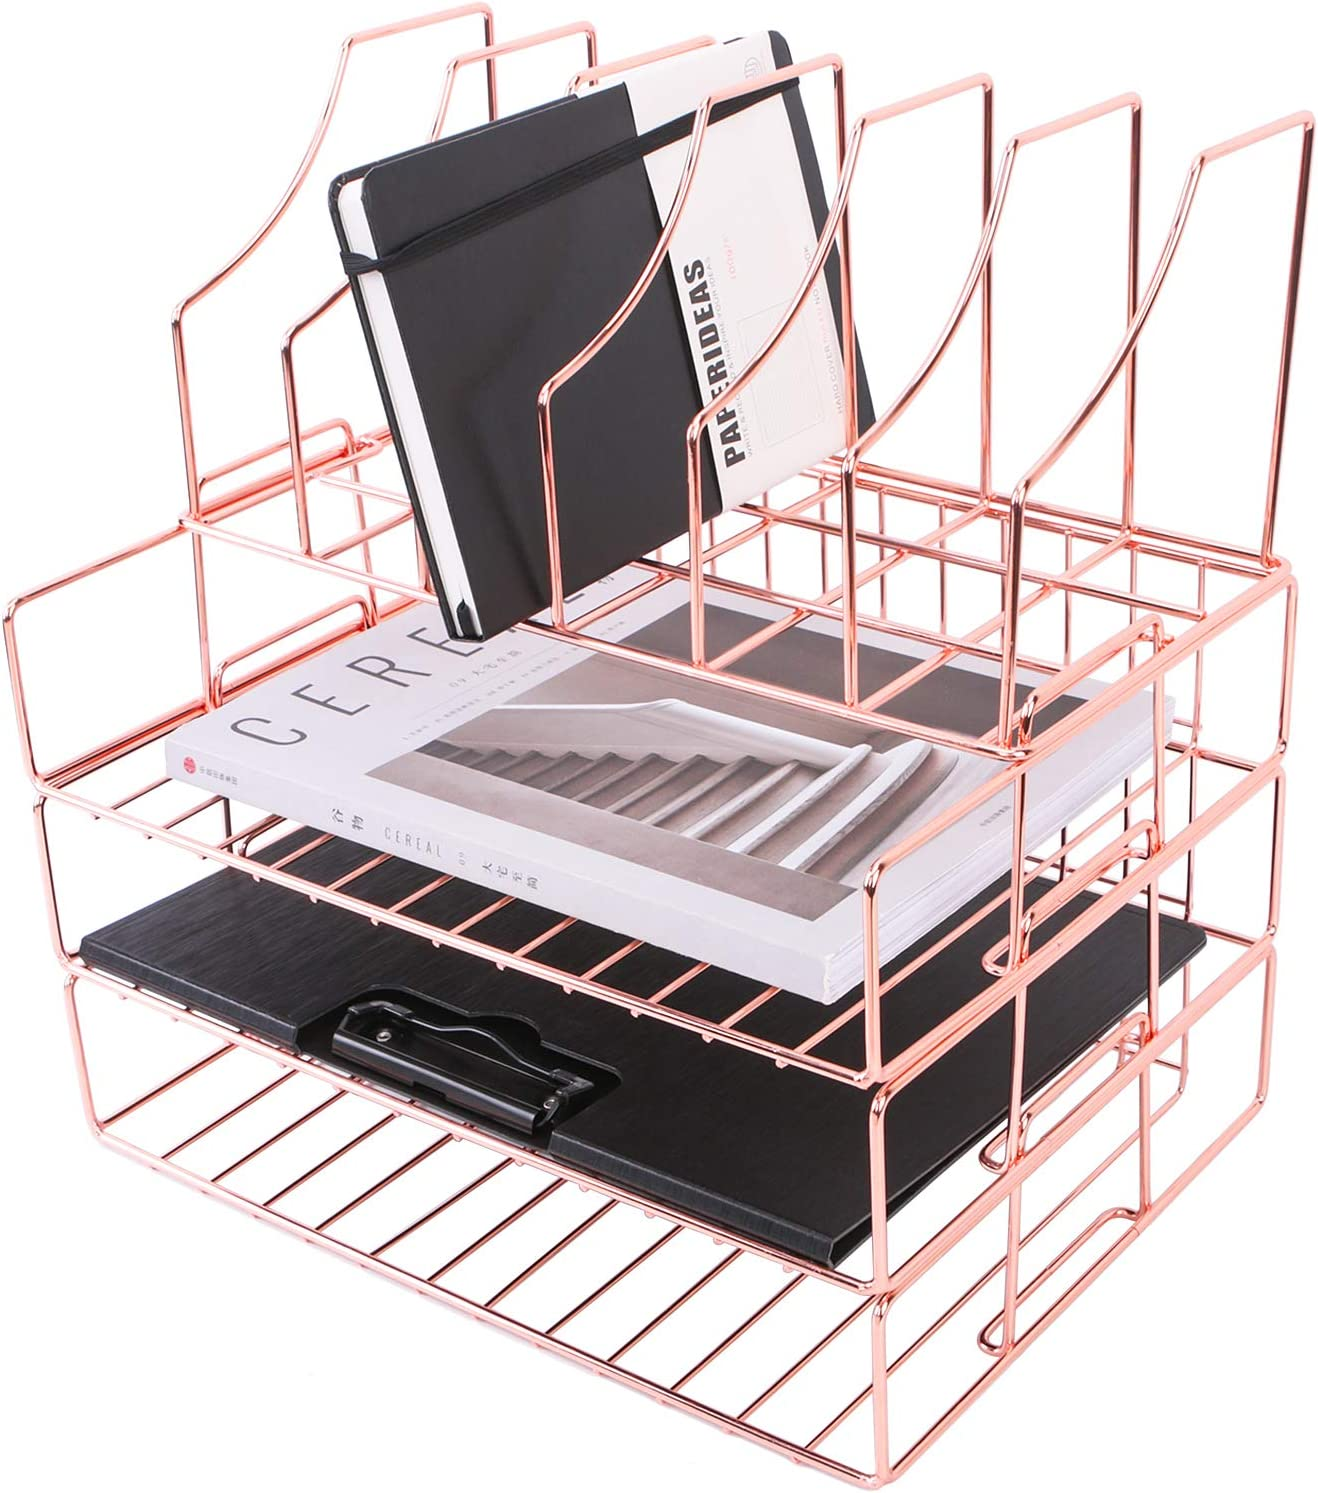 Nugorise Stackable File Tray, 3-Tier Paper Trays Plus Magazine Holder, Wire Office Desk Organizer Document Shelf for Mails, Folders, Books and More, Rose Gold